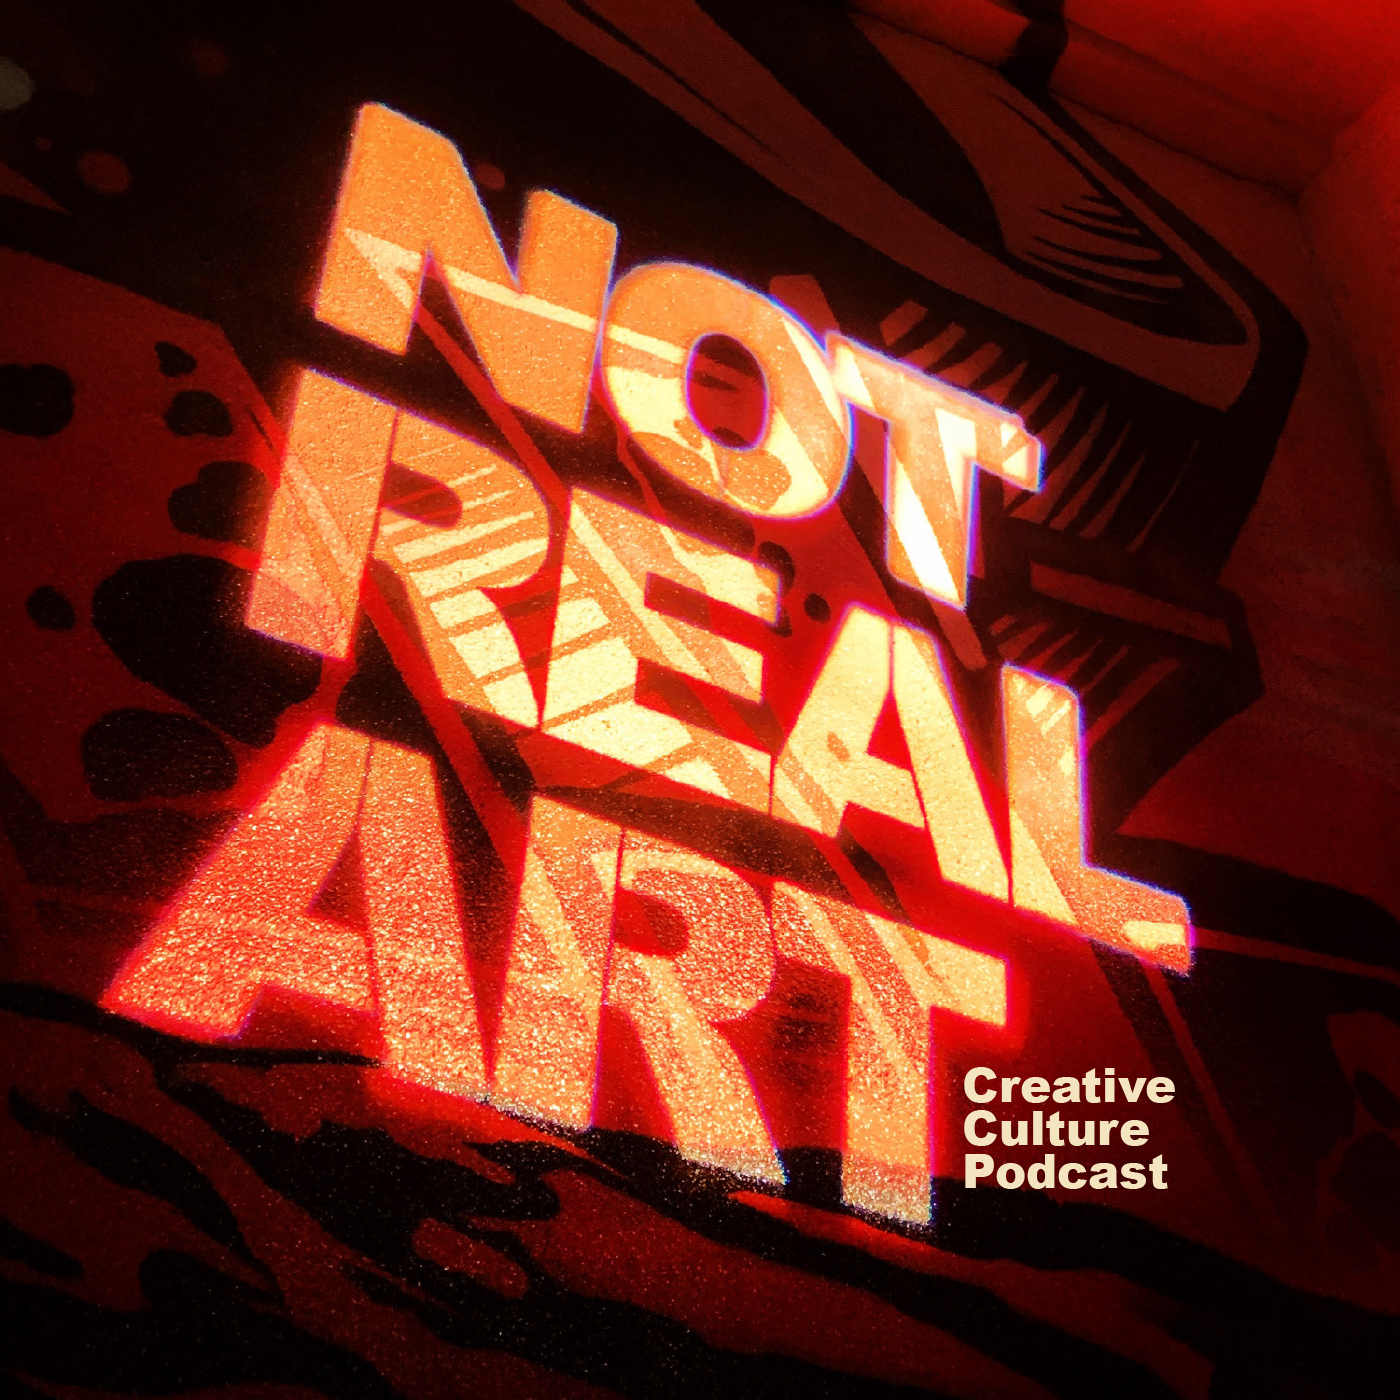 NOT REAL ART: The Podcast show art